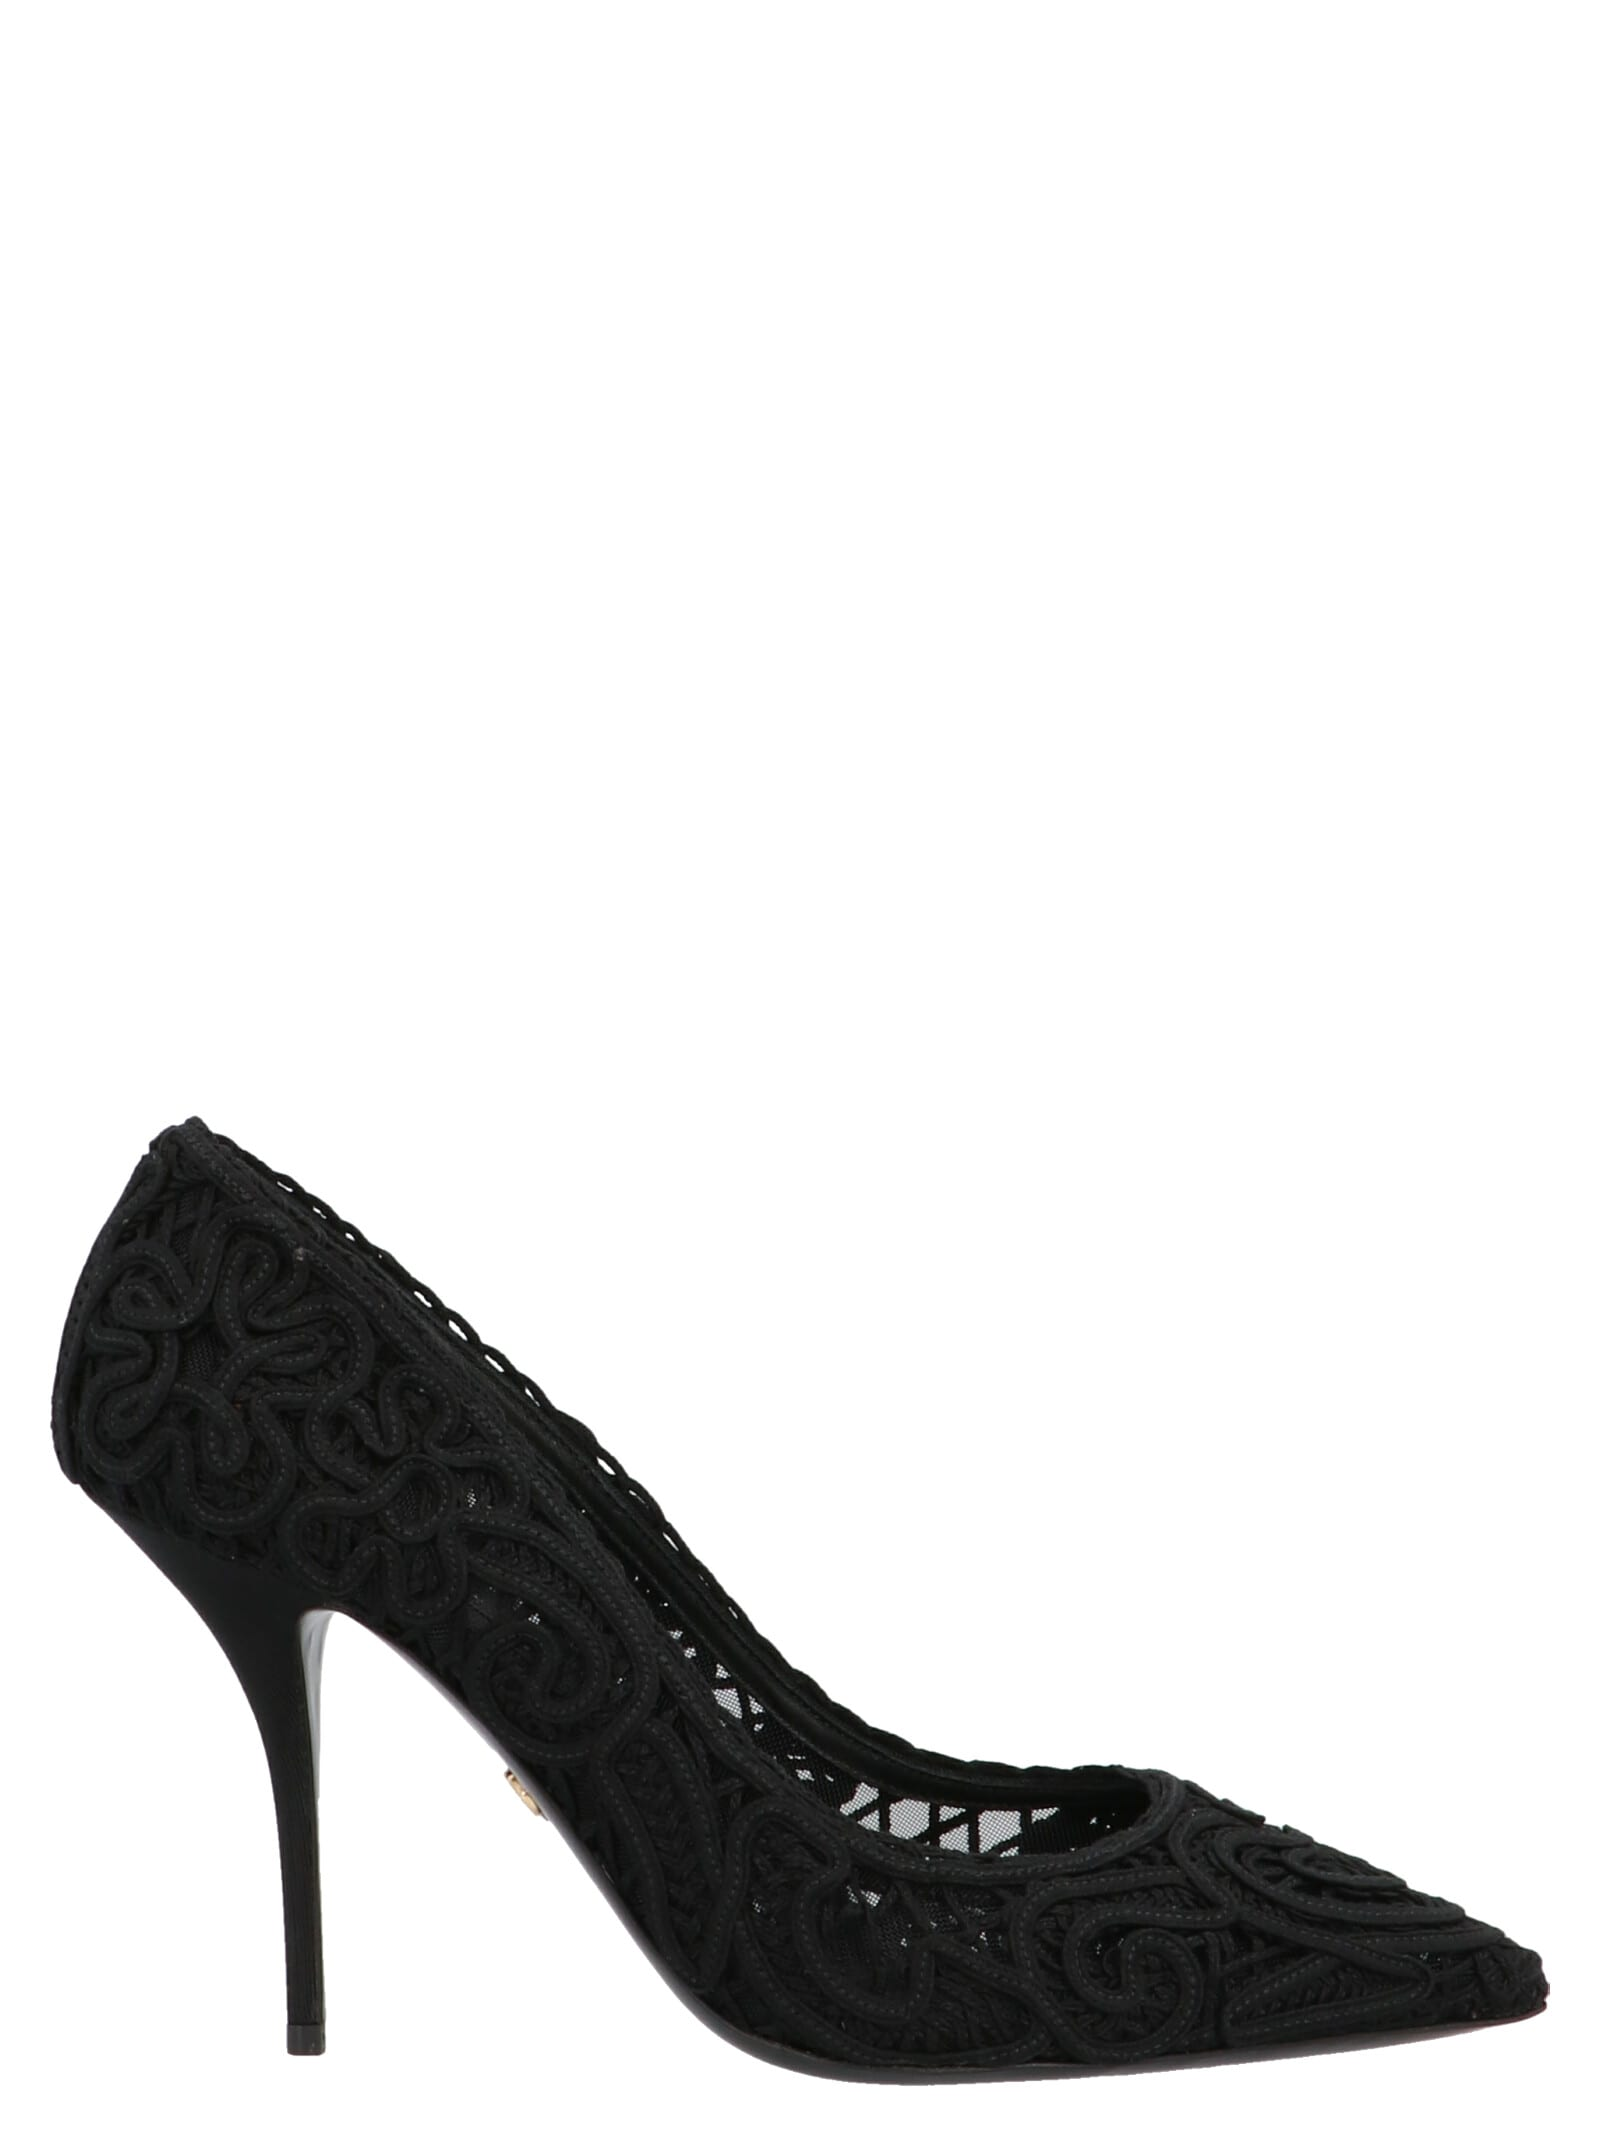 Buy Dolce & Gabbana cordonetto Shoes online, shop Dolce & Gabbana shoes with free shipping